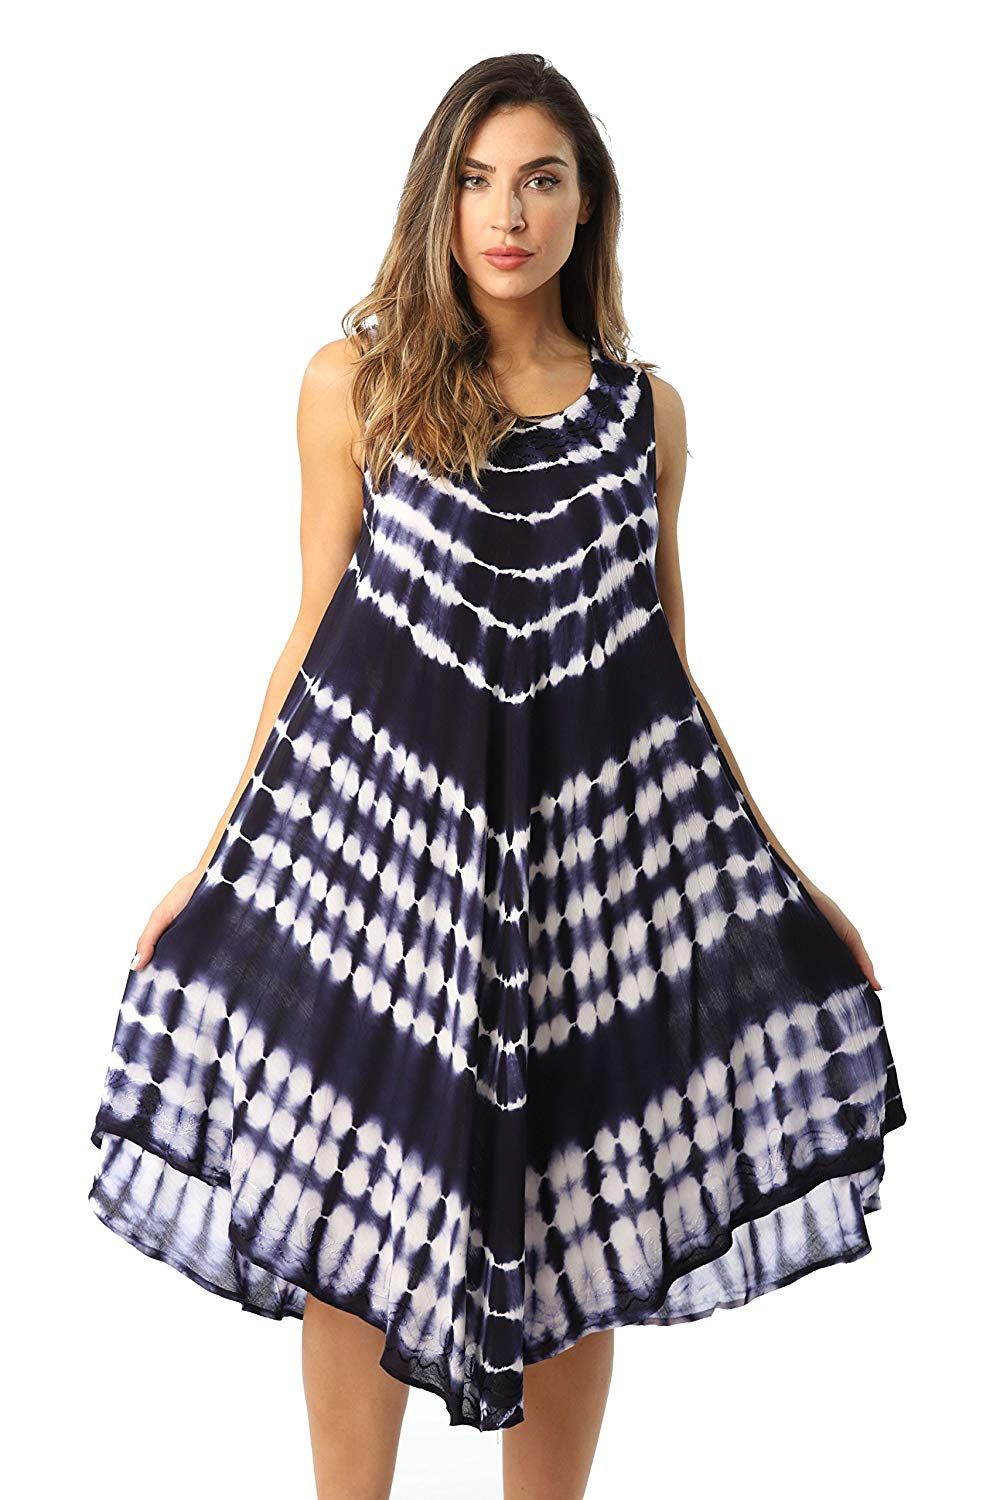 678bd1449e Riviera Sun Tie Dye Summer Dress Beach Cover up at Amazon Womens Clothing  store, Amazon Affiliate link. Click image for detail, #Amazon #riviera #sun  #tie ...